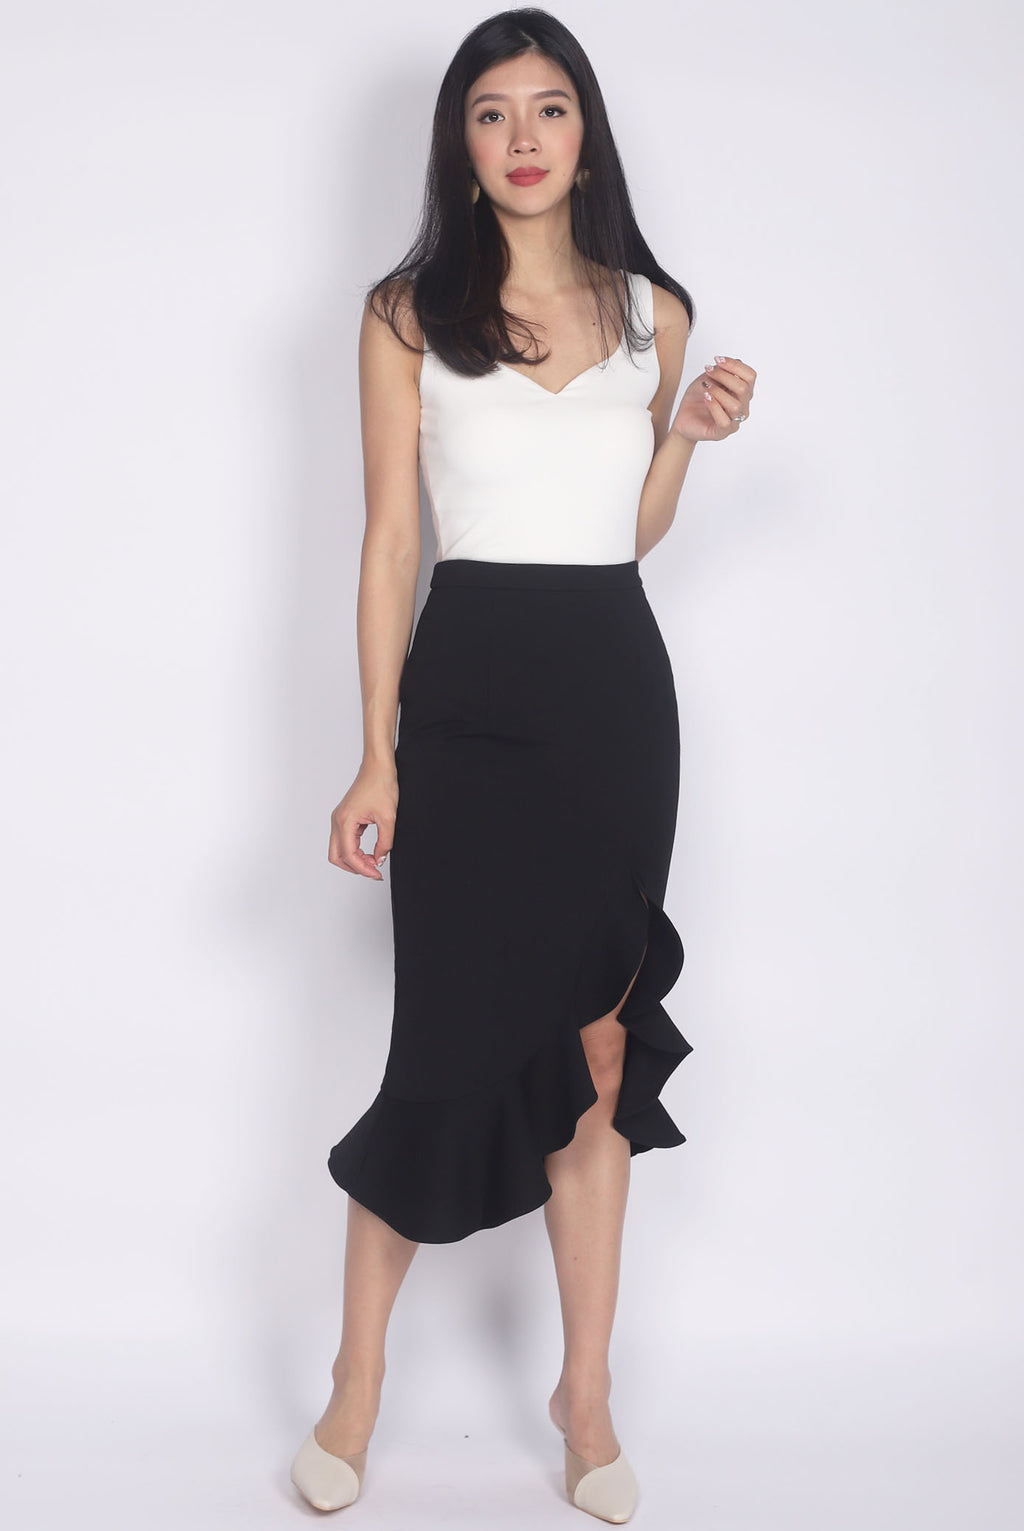 *Premium* Denver Mermaid Slit Skirt In Black